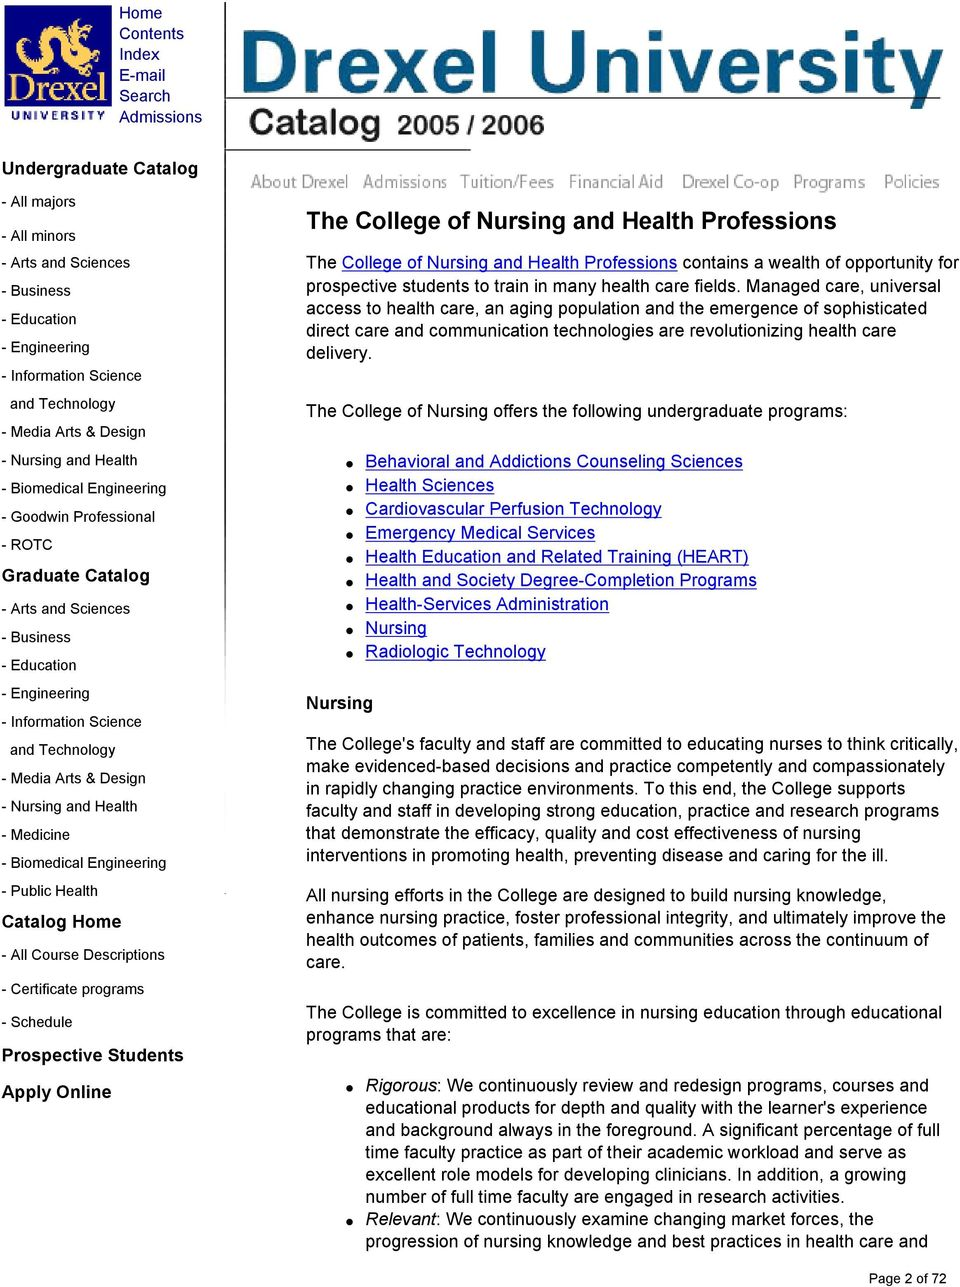 The College of Nursing offers the following undergraduate programs: Nursing Behavioral and Addictions Counseling Sciences Health Sciences Cardiovascular Perfusion Technology Emergency Medical